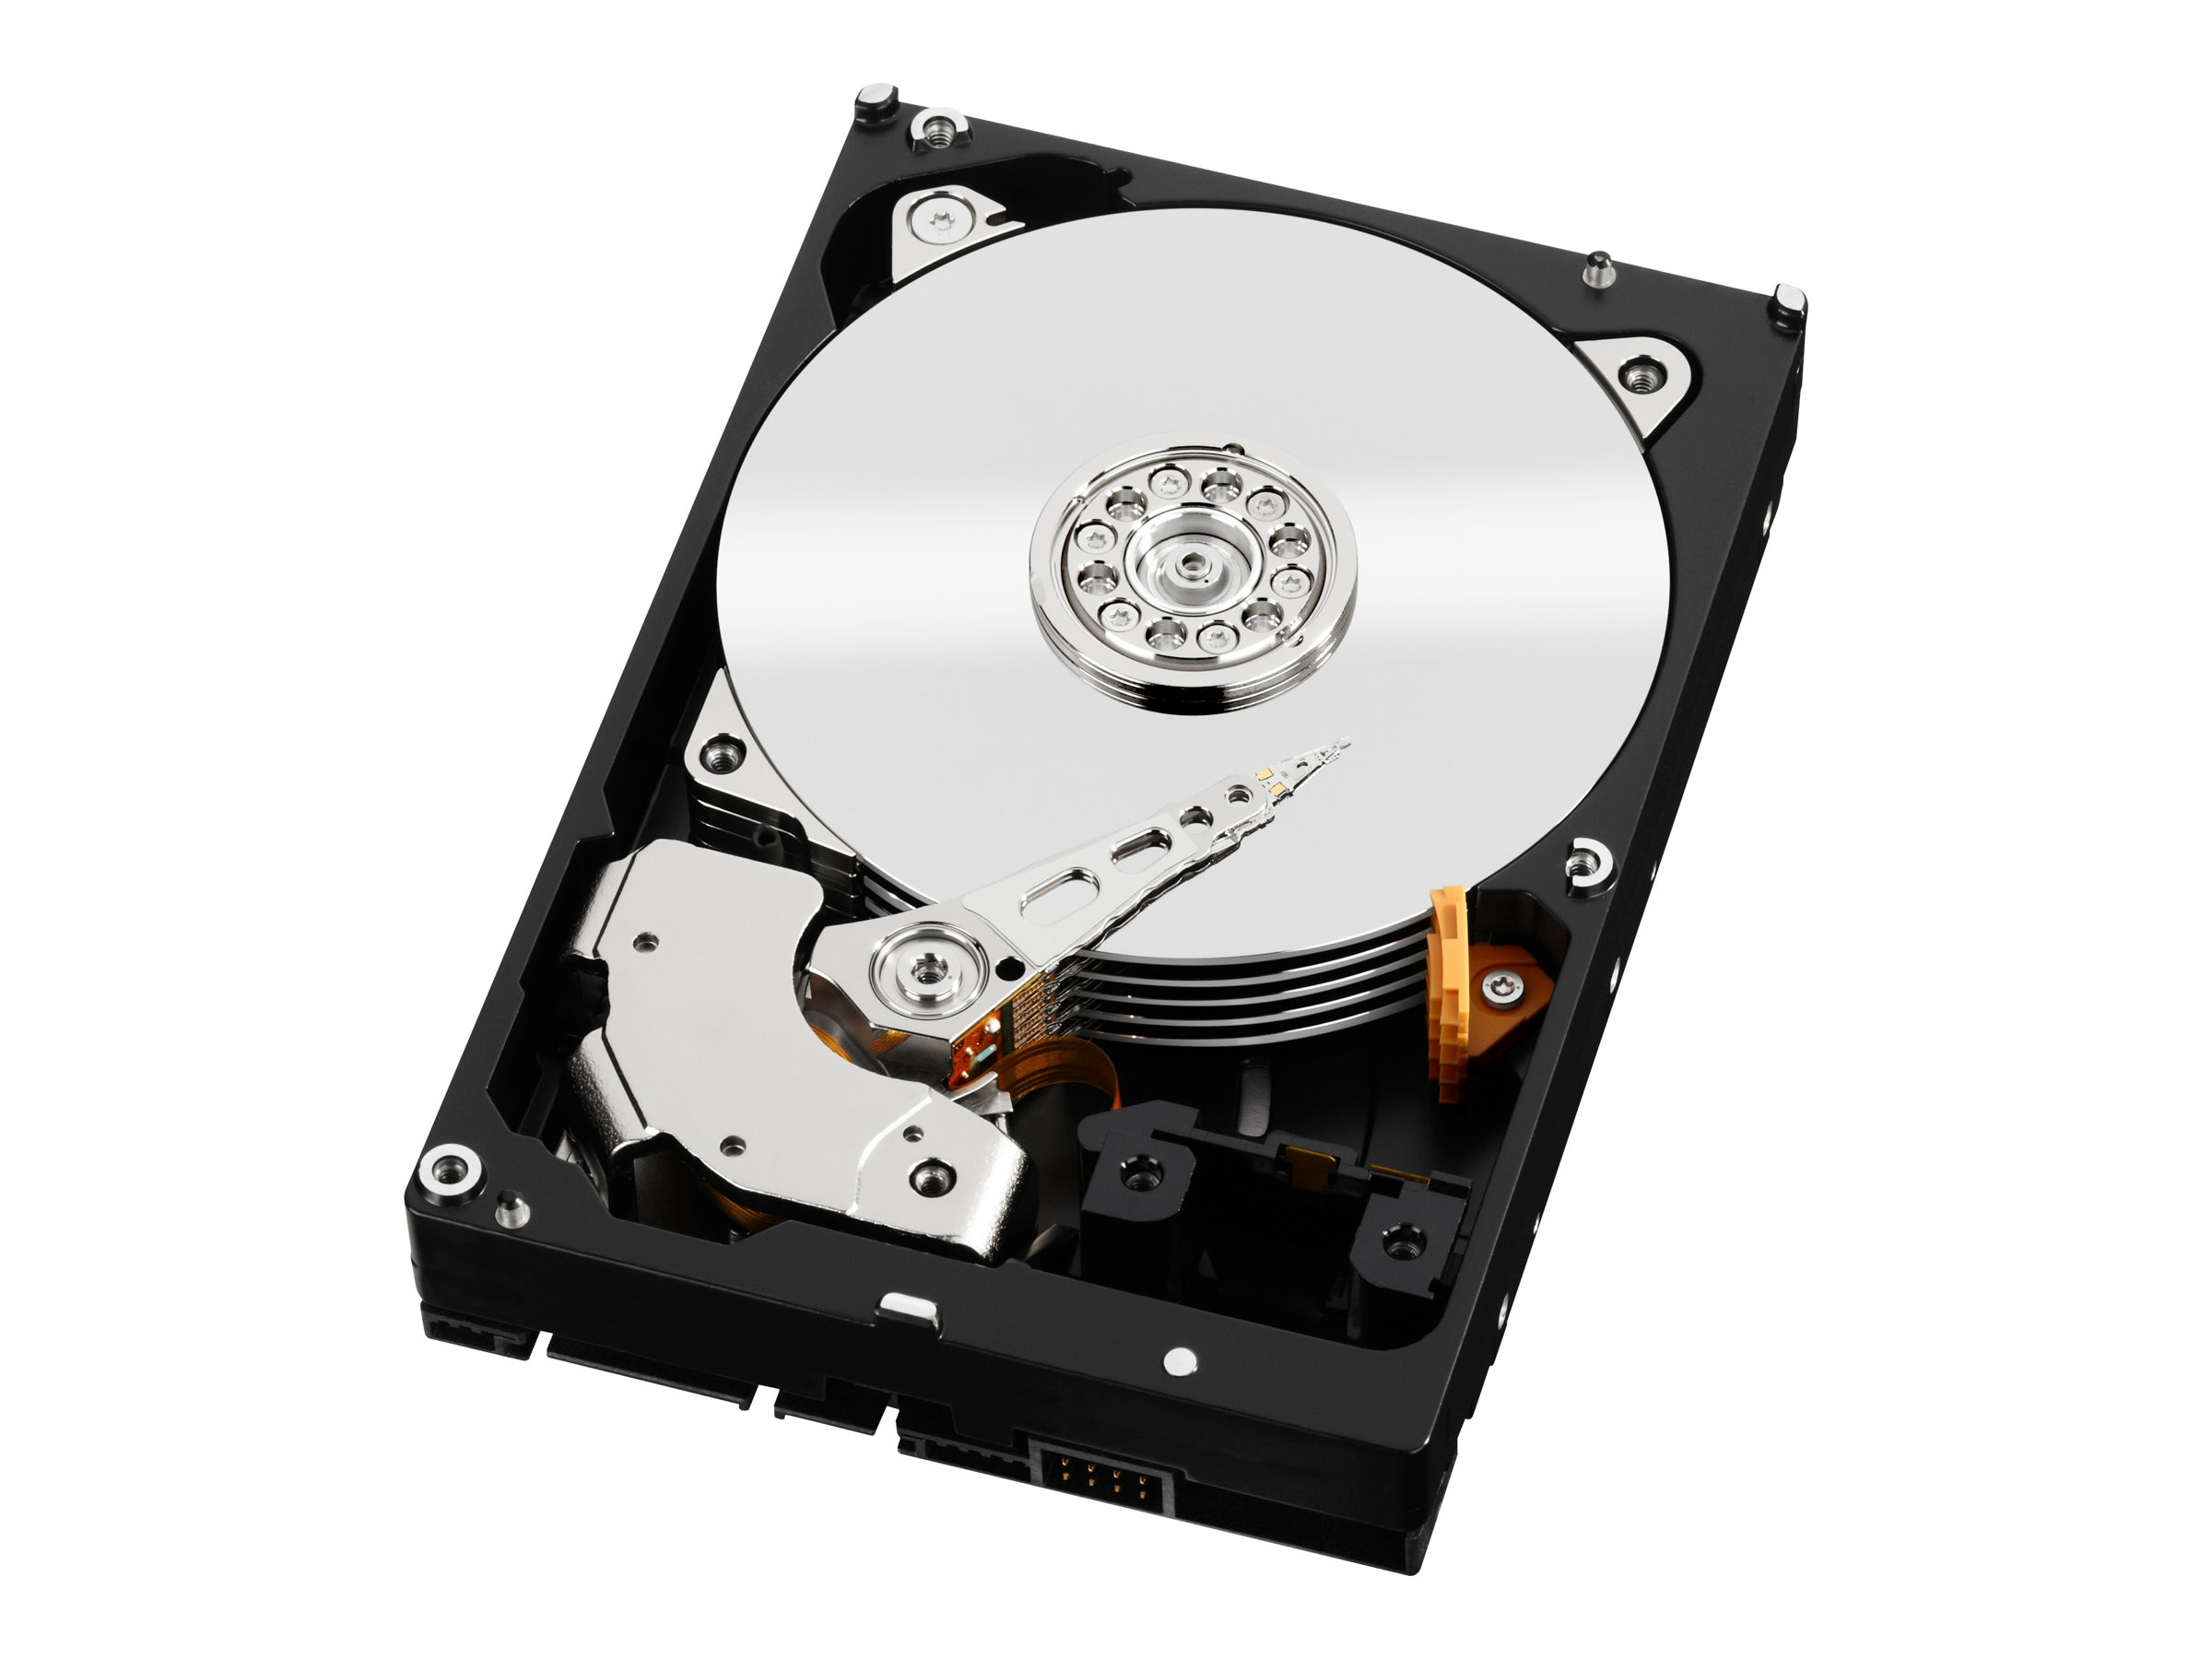 WD 4TB WD Se SATA 6Gb s 3.5 Internal Hard Drive, WD4000F9YZ, 15778392, Hard Drives - Internal